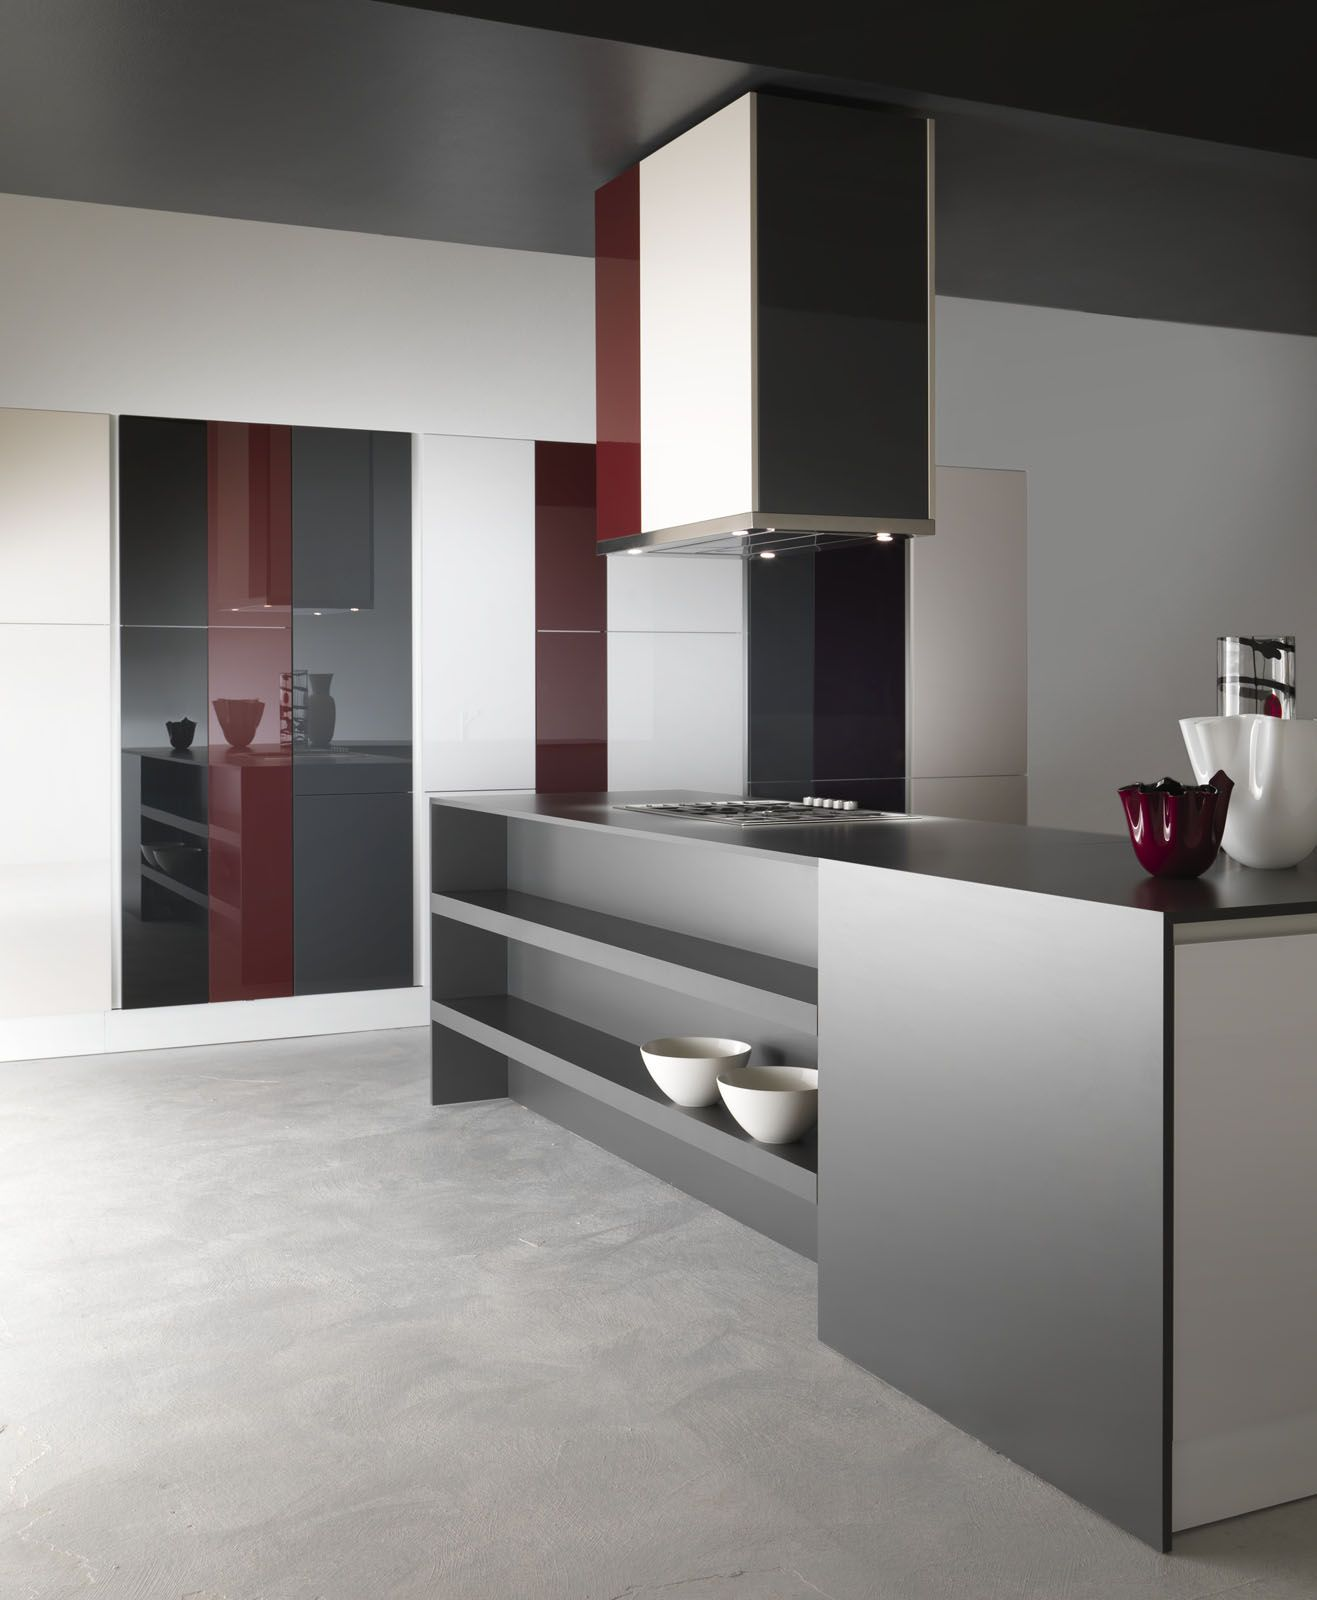 k chen k chen serie crystal bassadie m bel aus italien. Black Bedroom Furniture Sets. Home Design Ideas